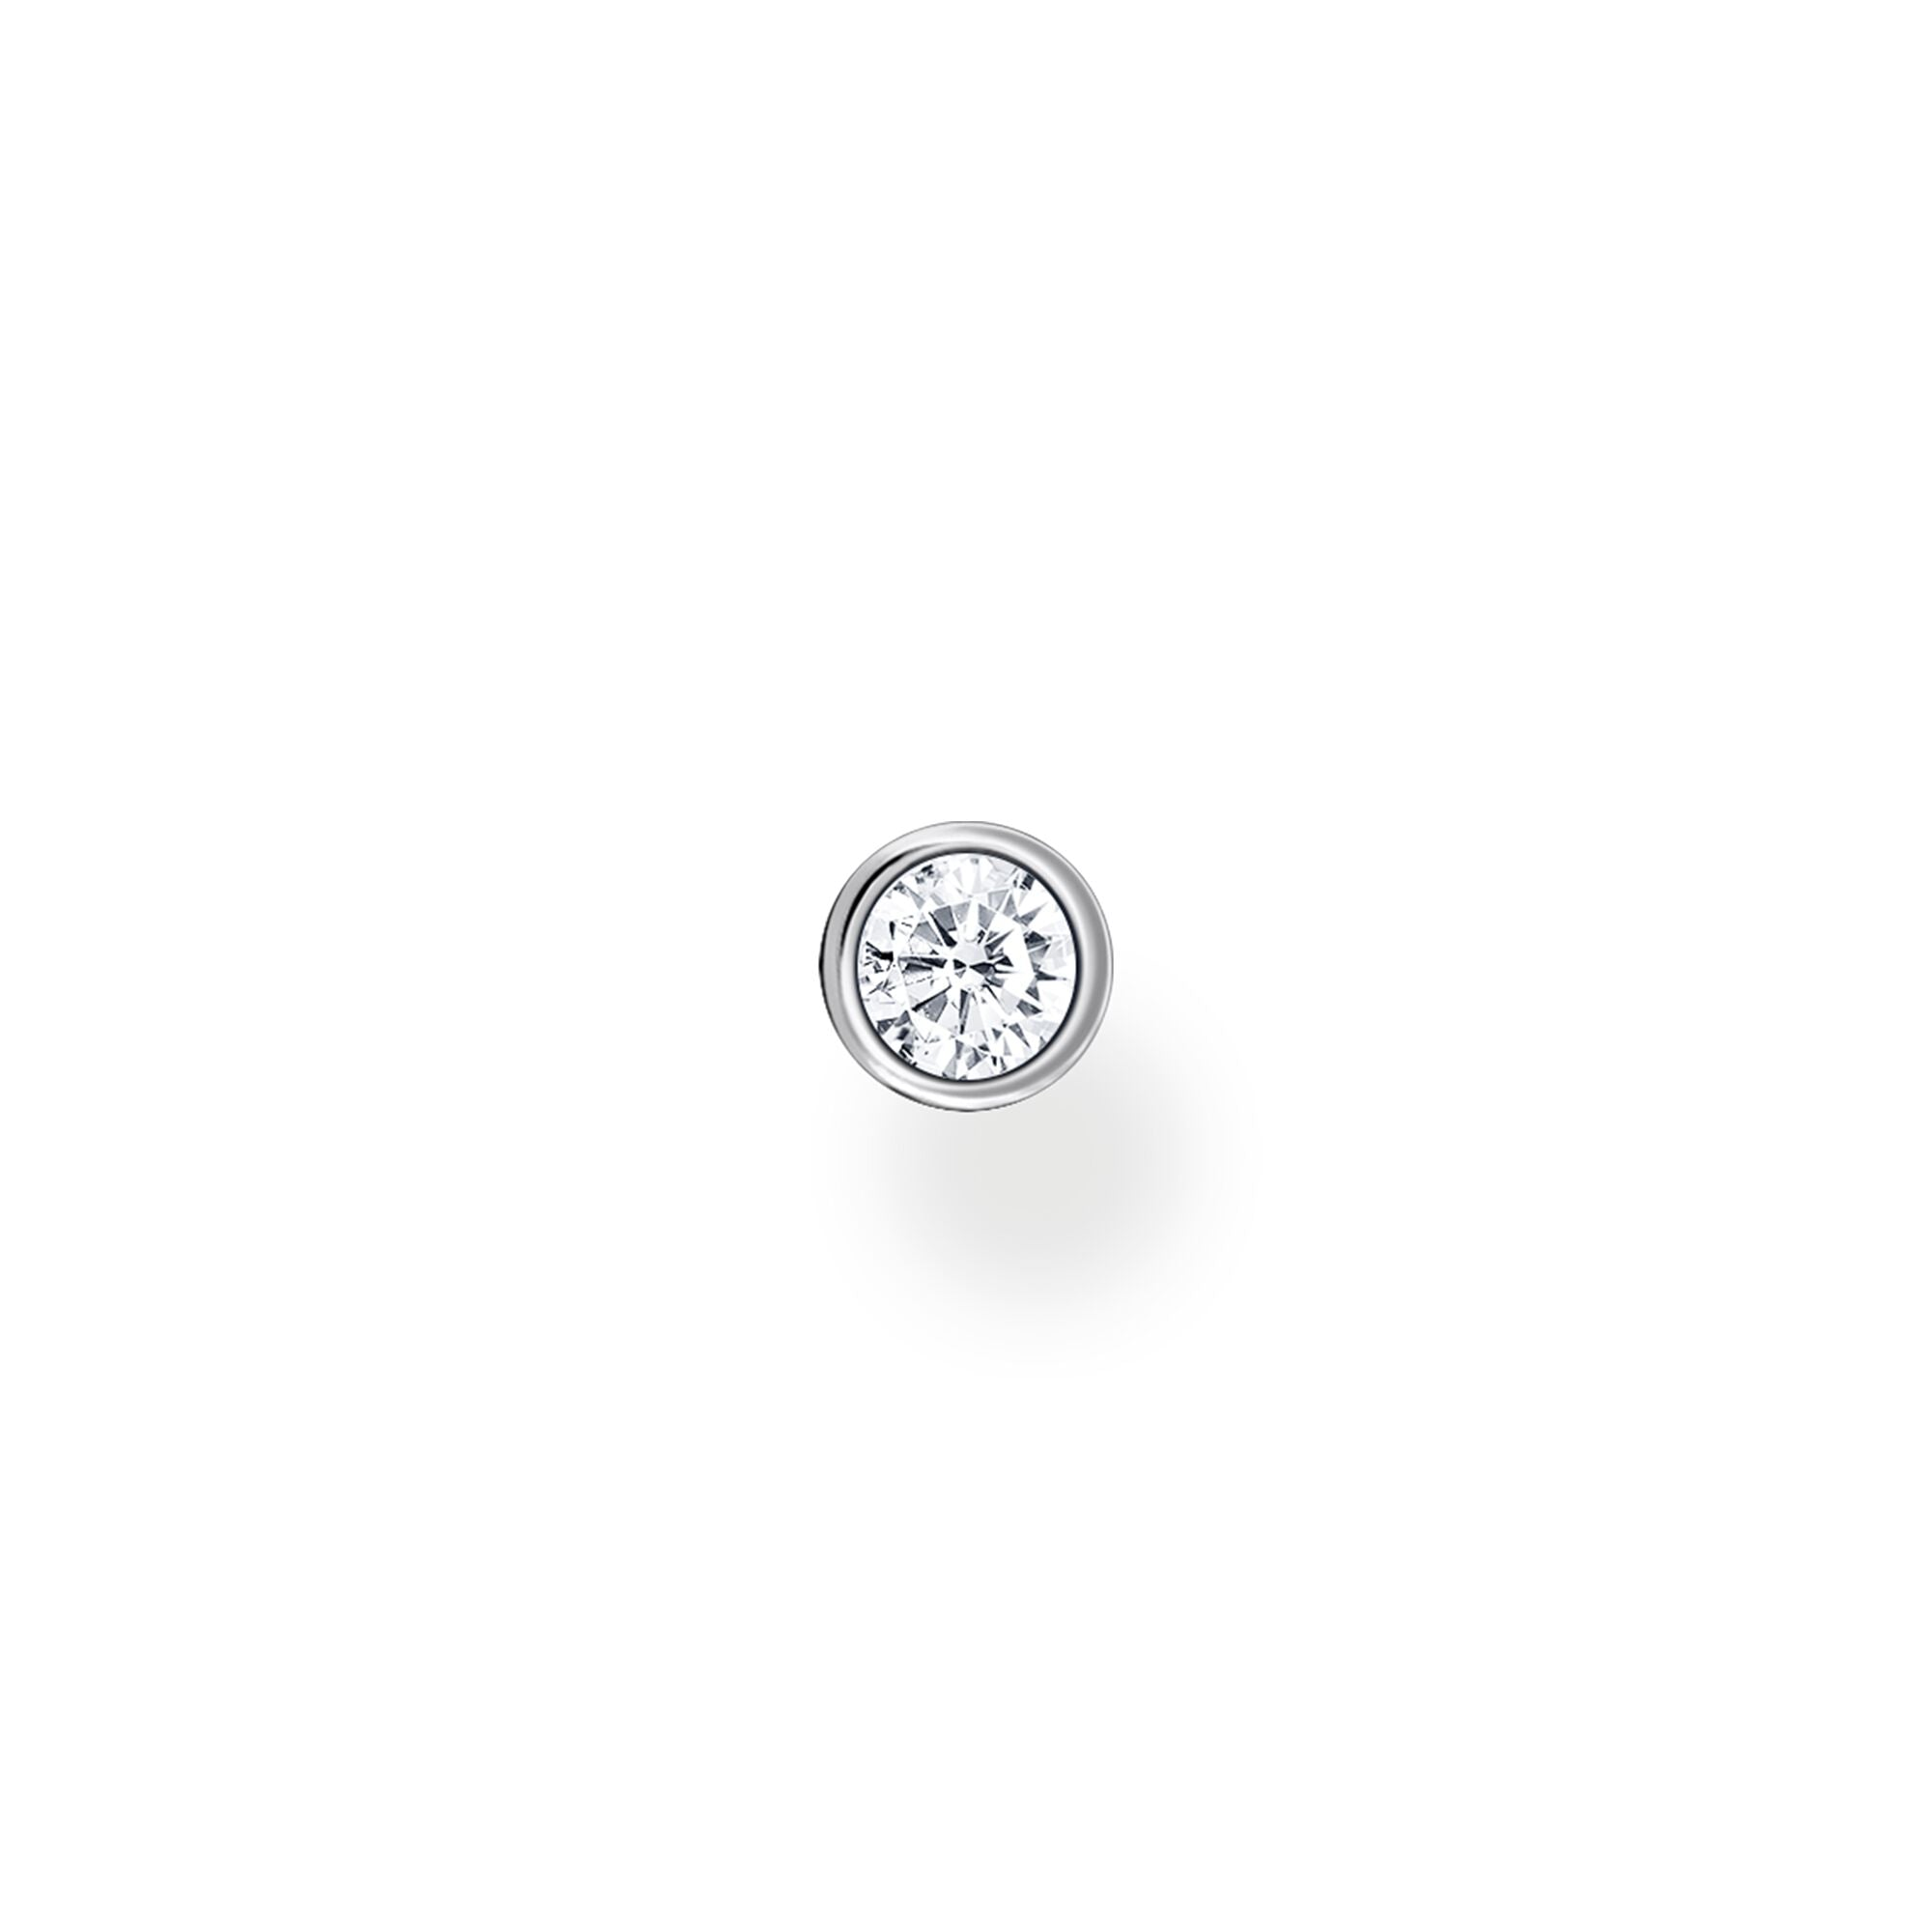 Thomas Sabo, Sterling Silver, Cubic Zirconia, Single Stone, Single Stud Earring, Push backing, Ottawa